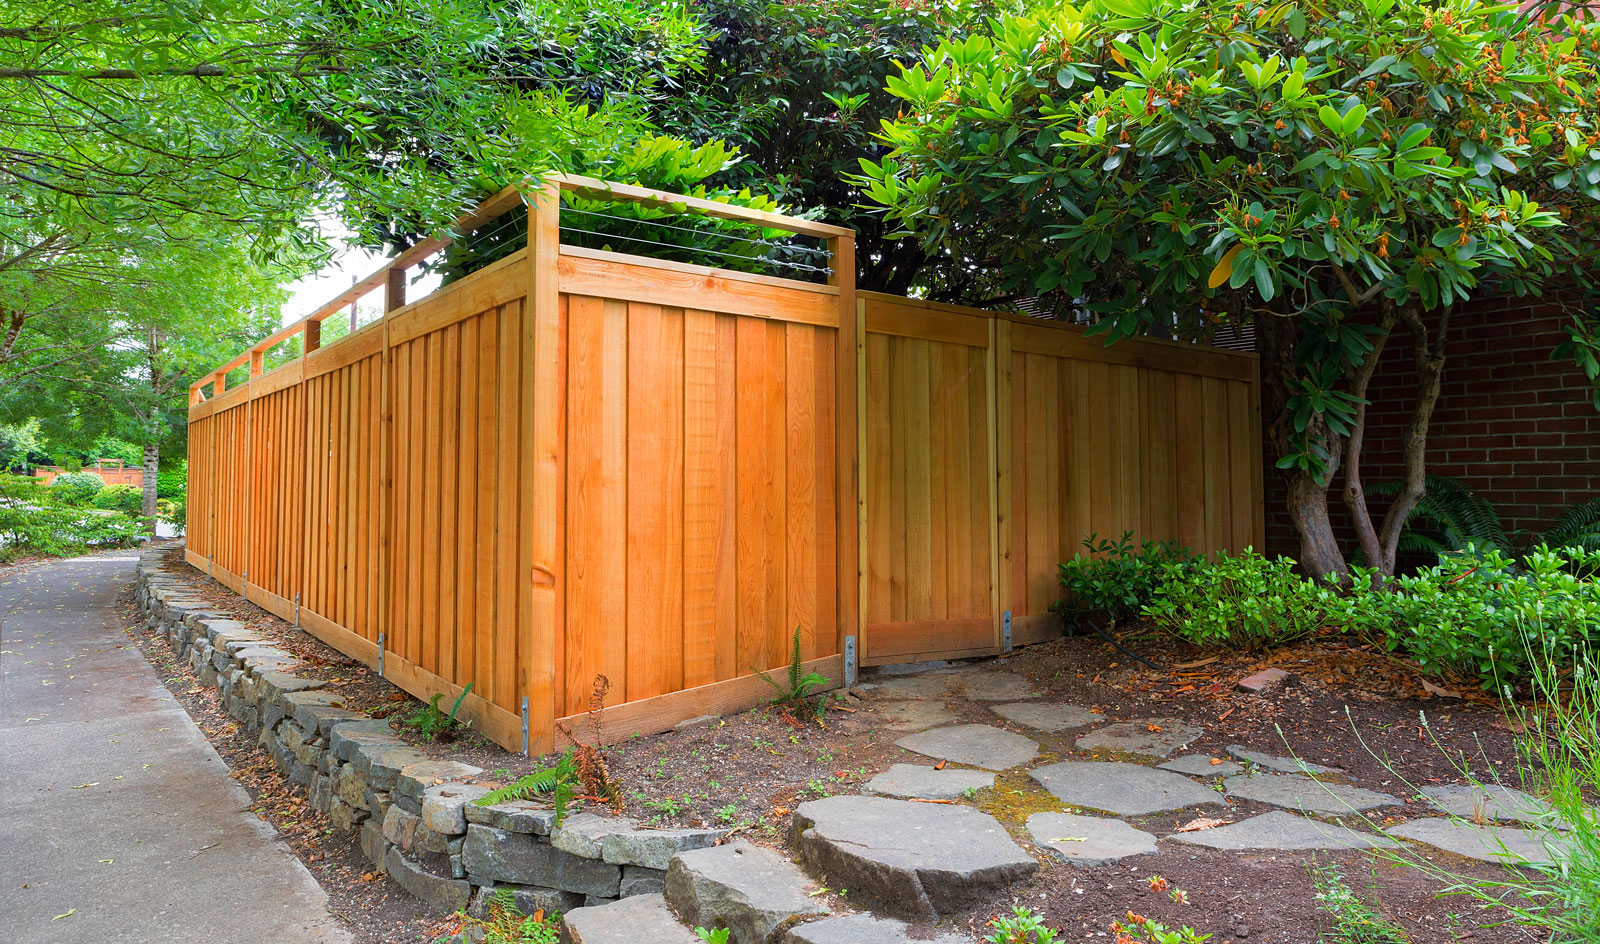 Fencing made from Red Cedar wood surrounded by gardens